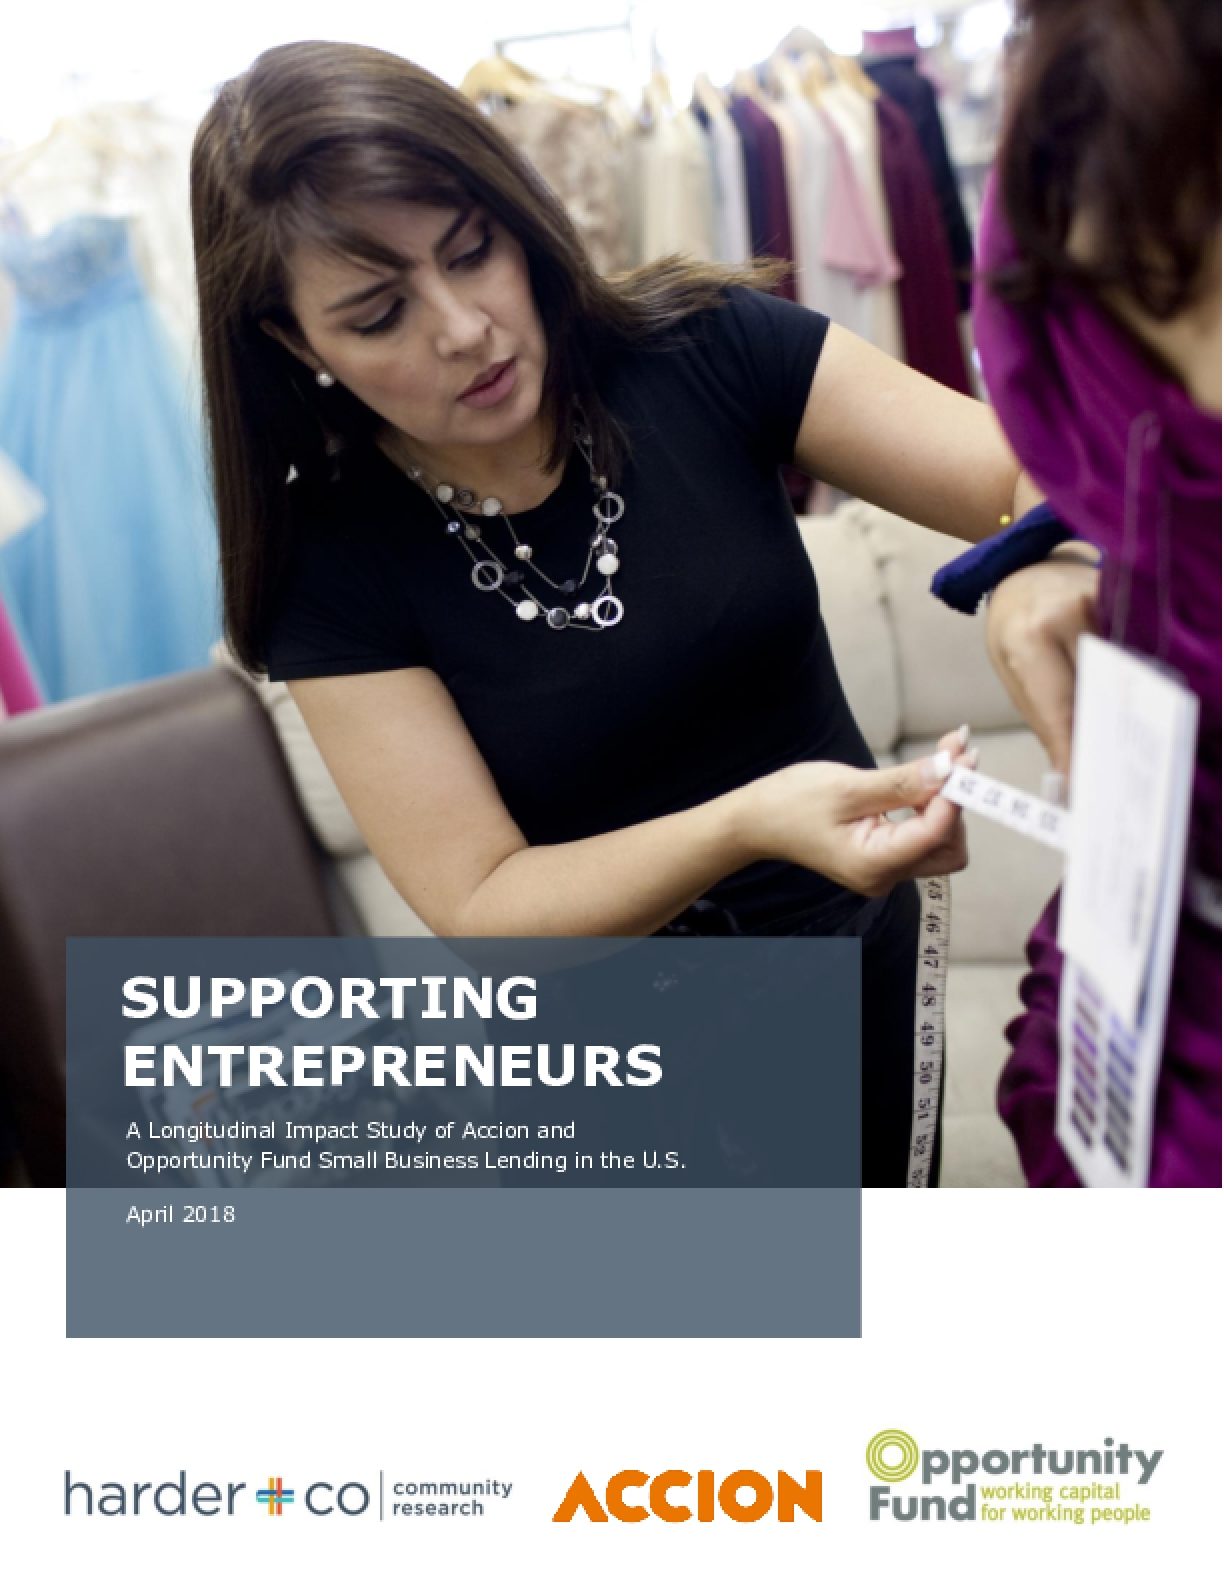 Supporting Entrepreneurs: A Longitudinal Impact Study of Accion and Opportunity Fund Small Business Lending in the U.S.